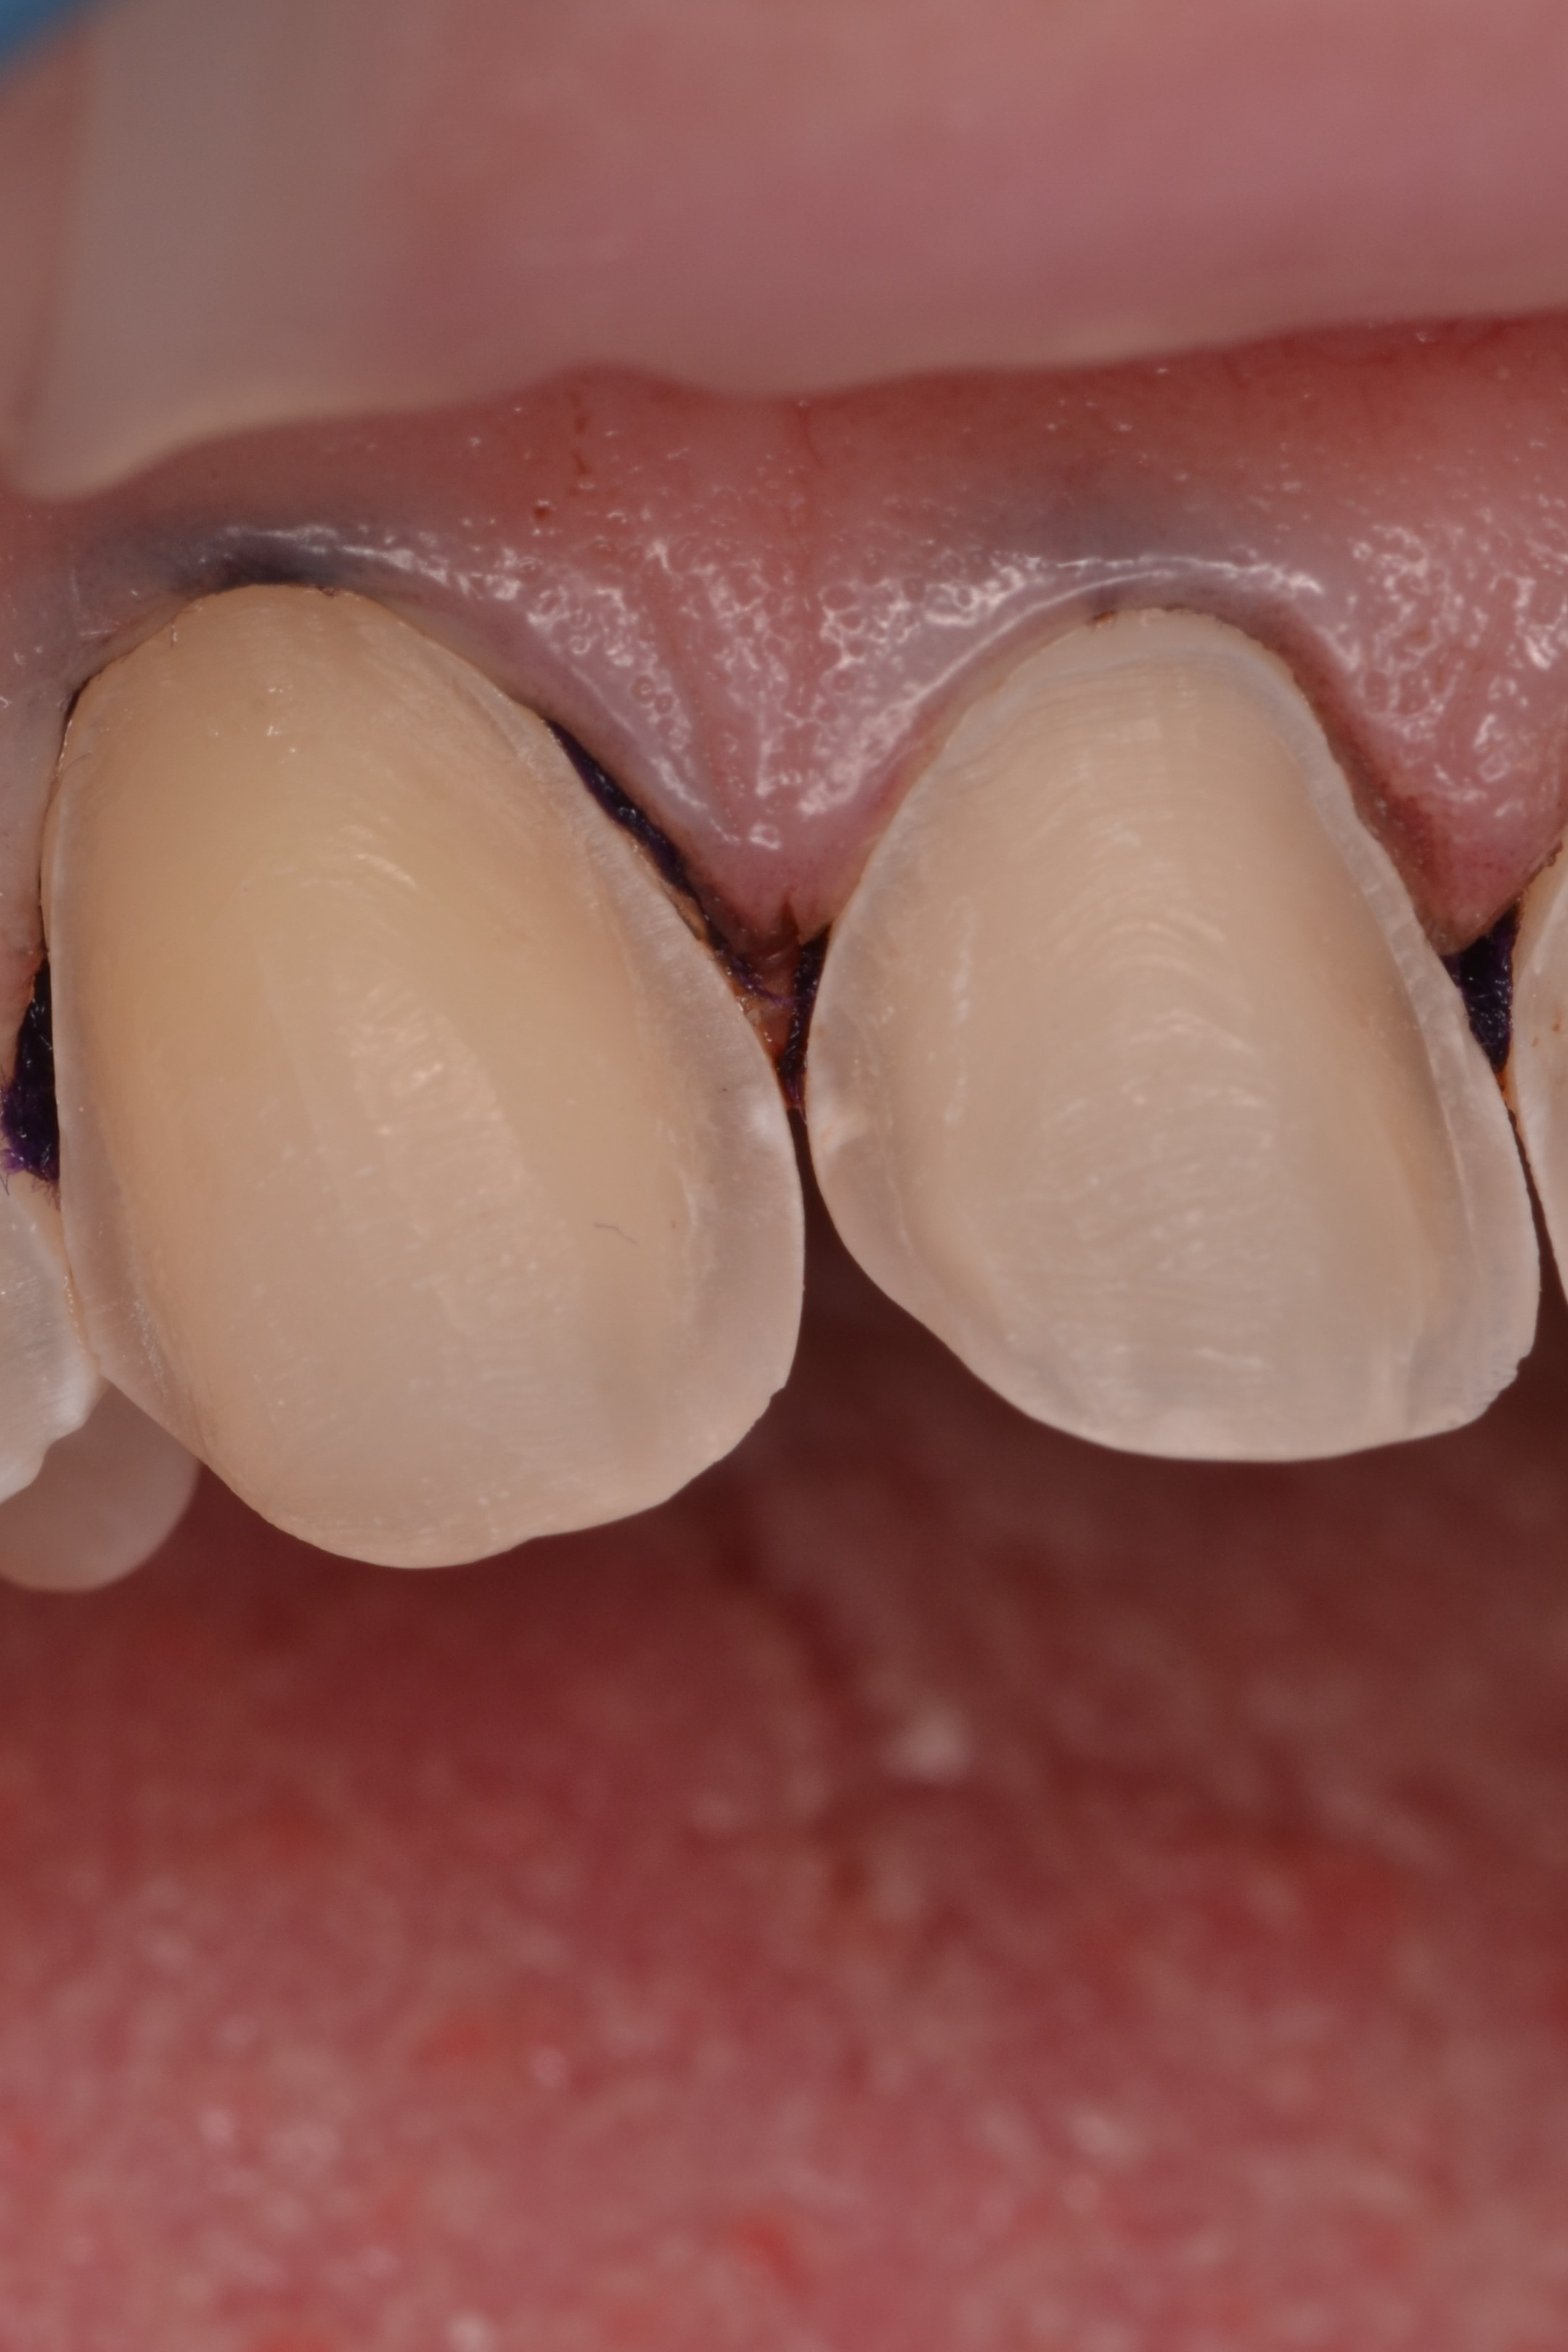 Figure 6; Interproximal caries discovered during initial tooth preparation